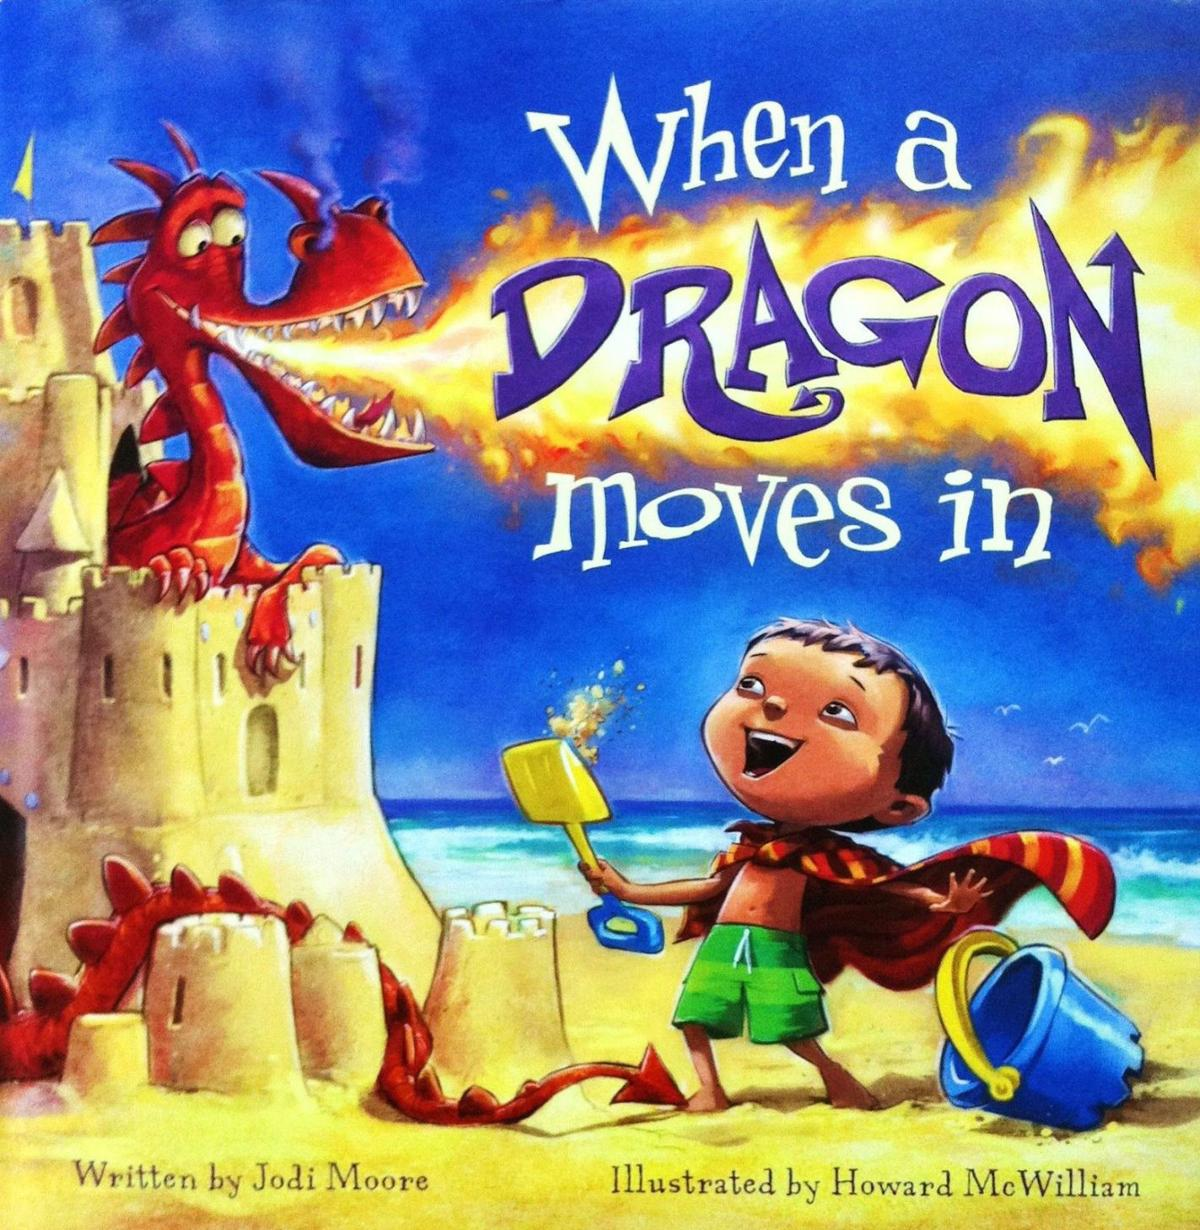 Dragon tale fun for kids and endearing to parents